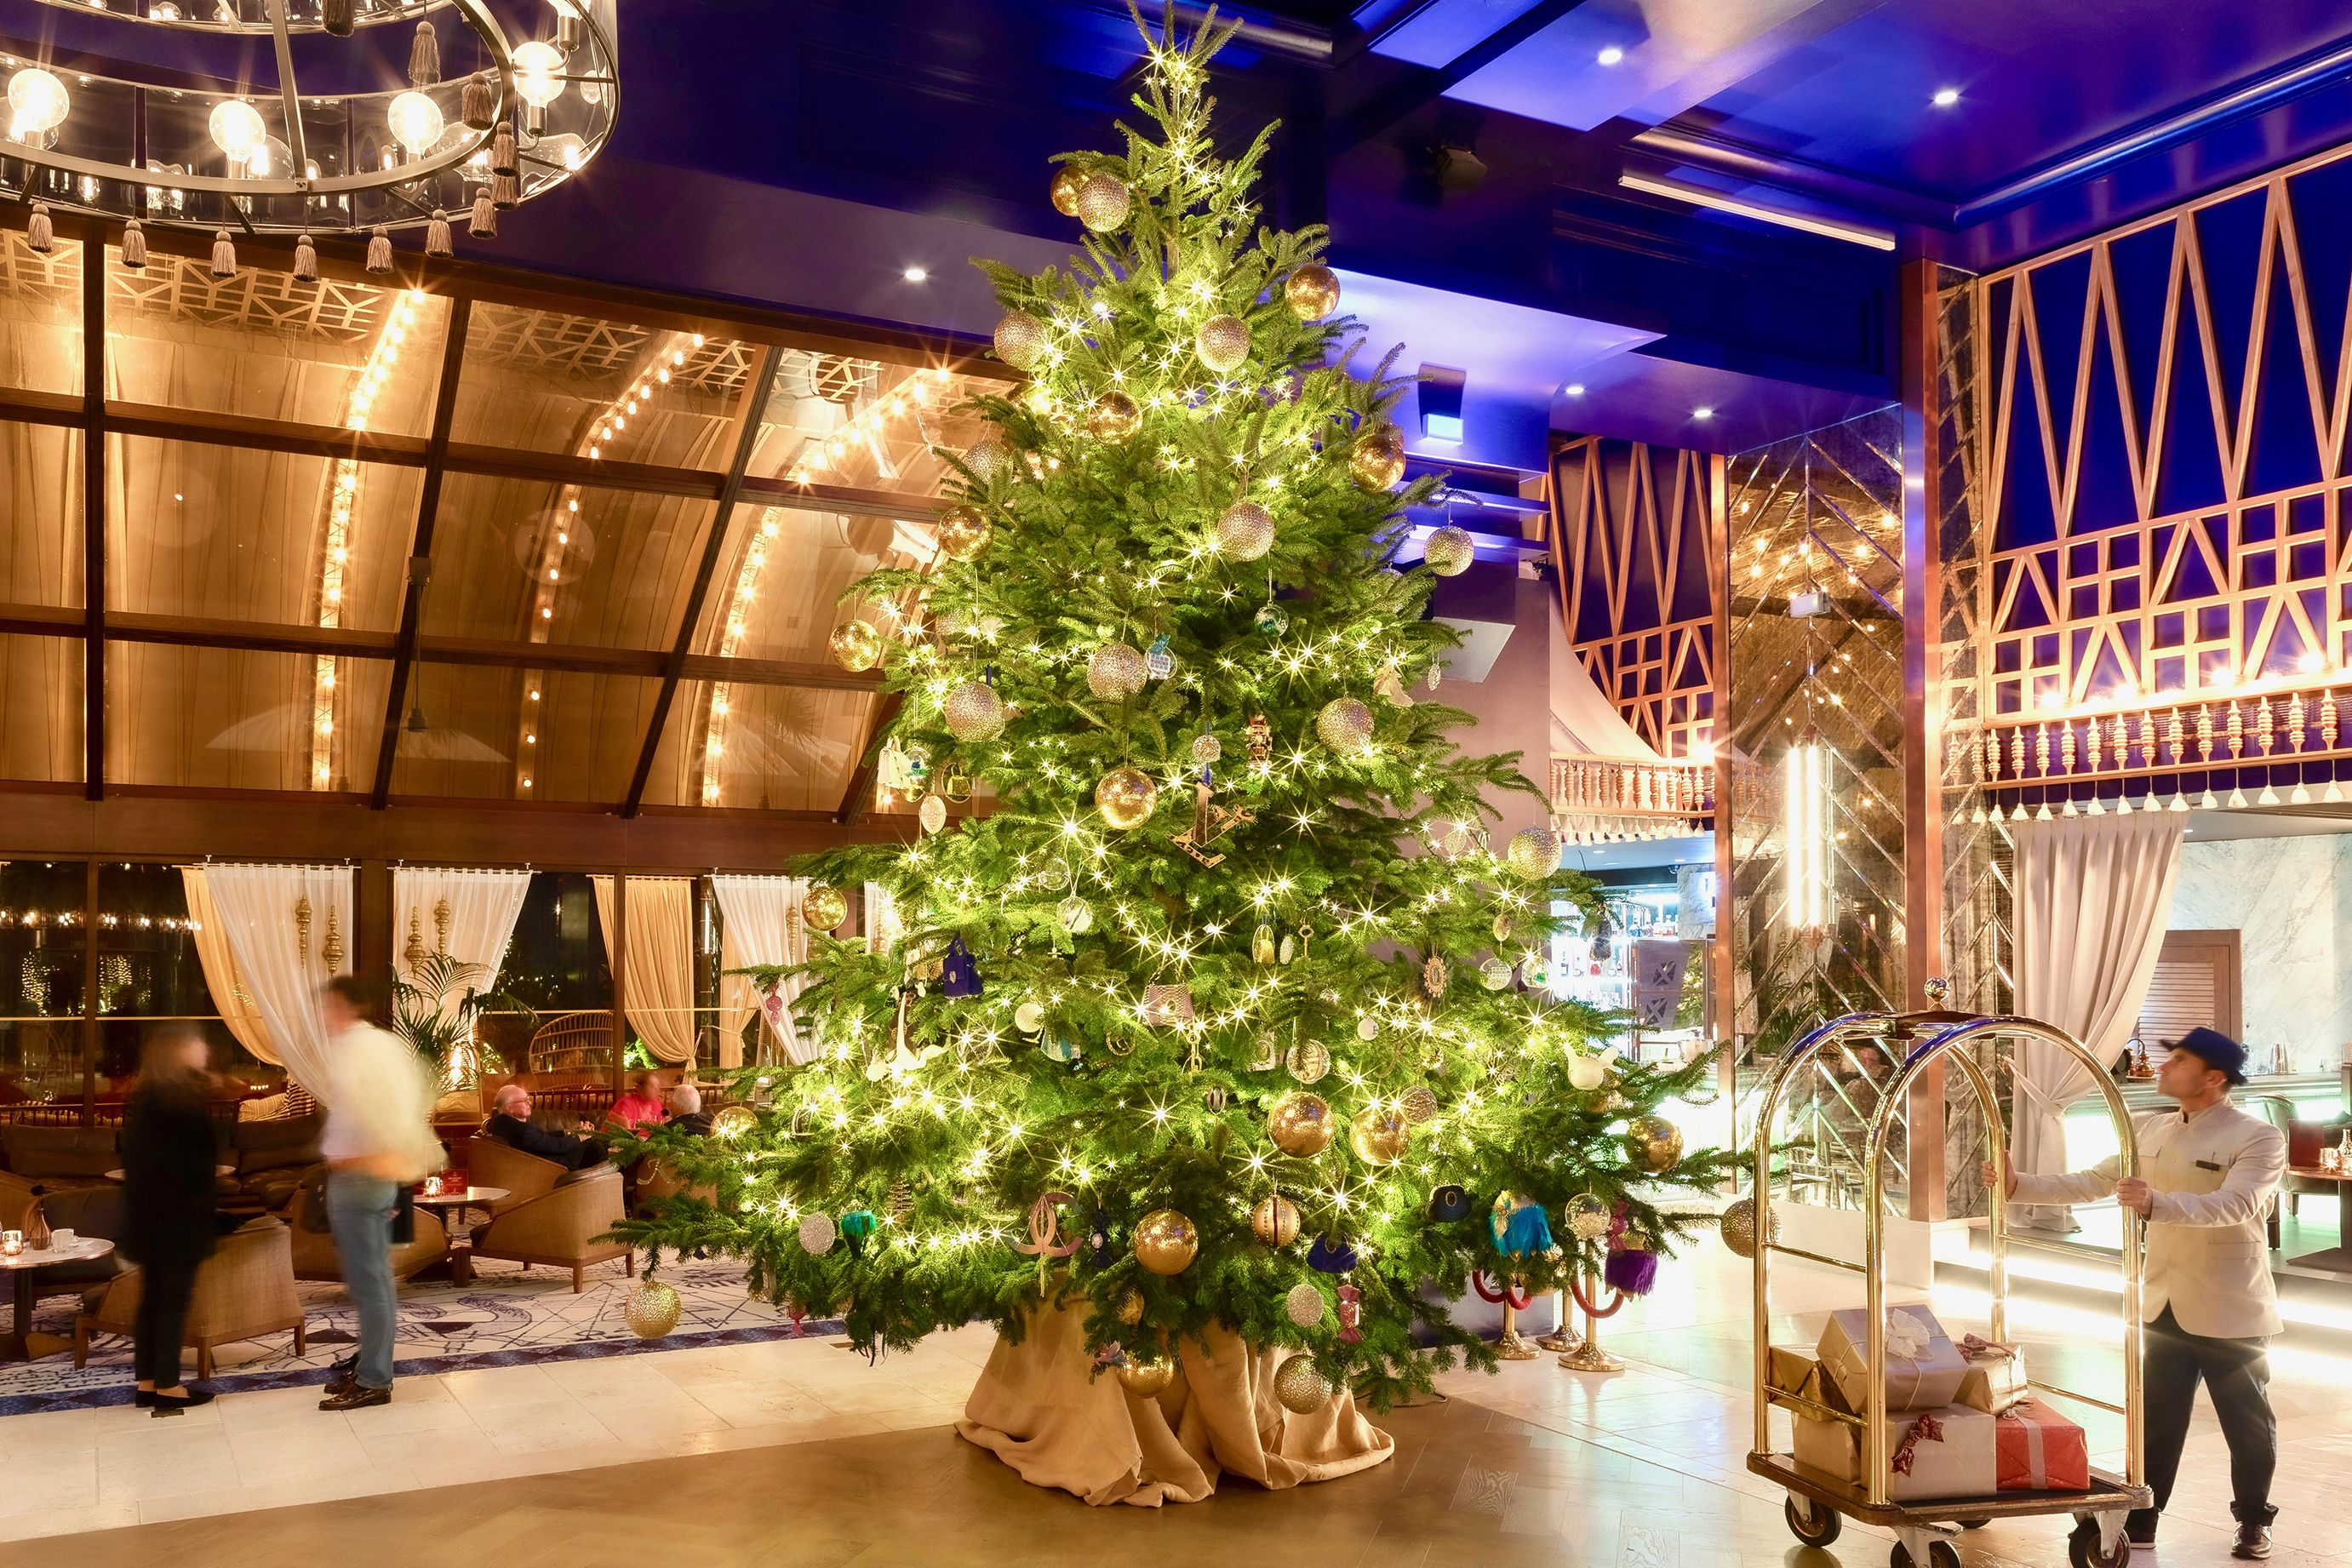 Flipboard: The world's most expensive Christmas tree at the Kempinski Hotel Bahia in Spain cost ...